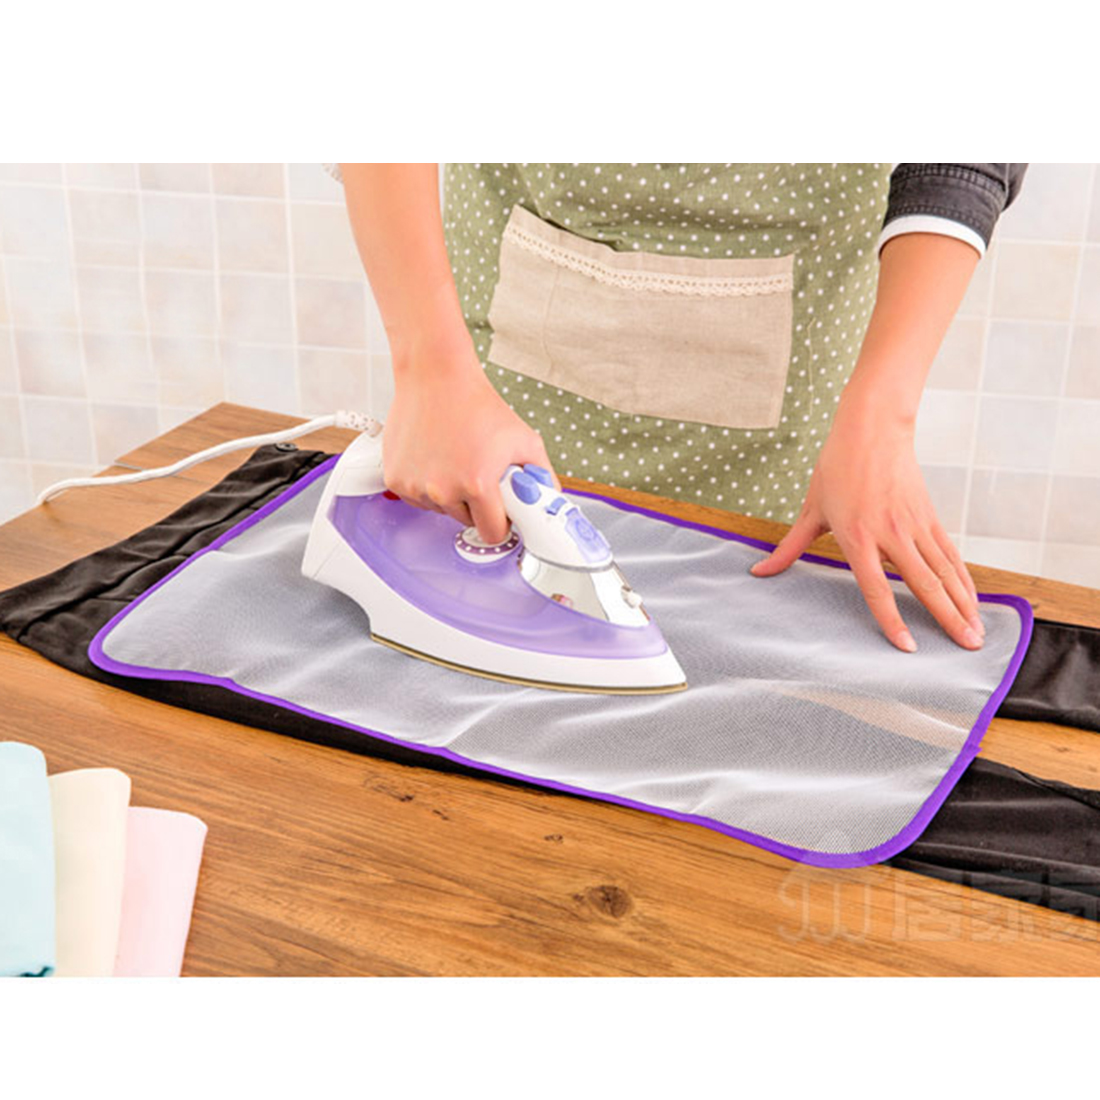 2016 Hot Sale Clothing Heat Resistant Ironing Mat Mesh ...